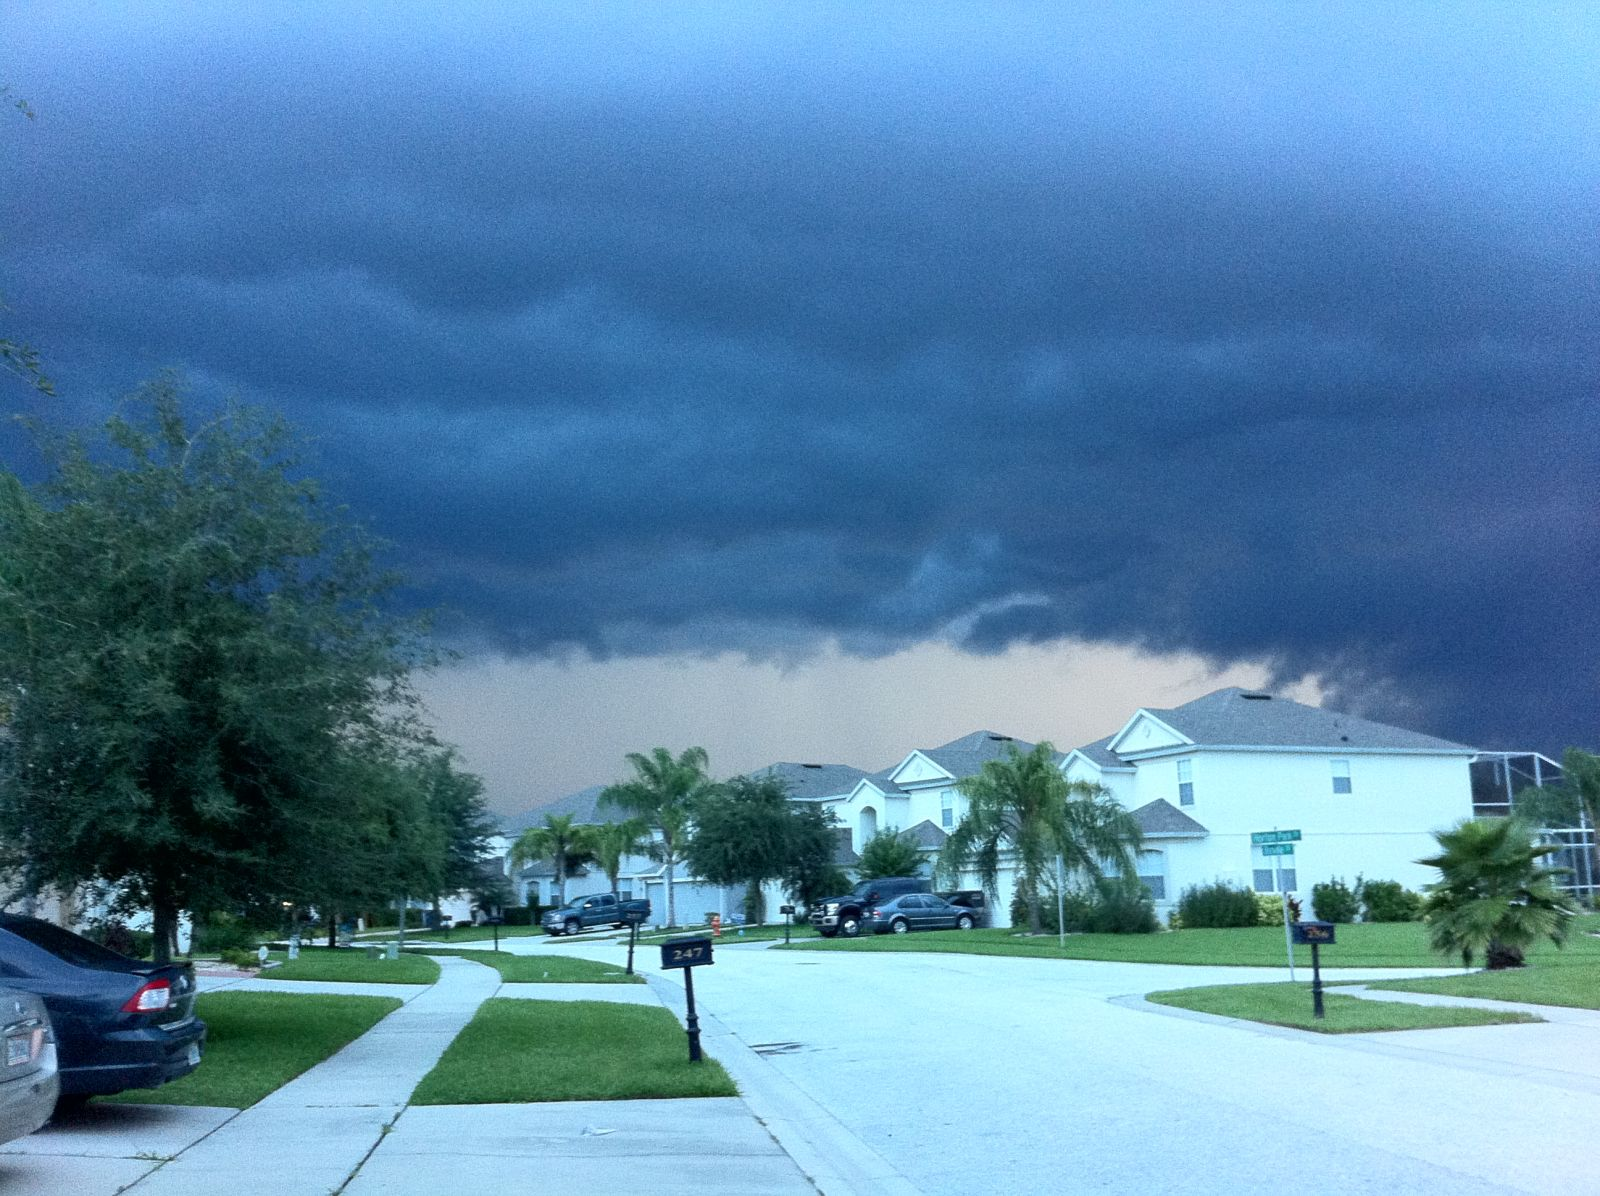 Severe Thunderstorm with weather warning attached rolling into Davenport, Florida